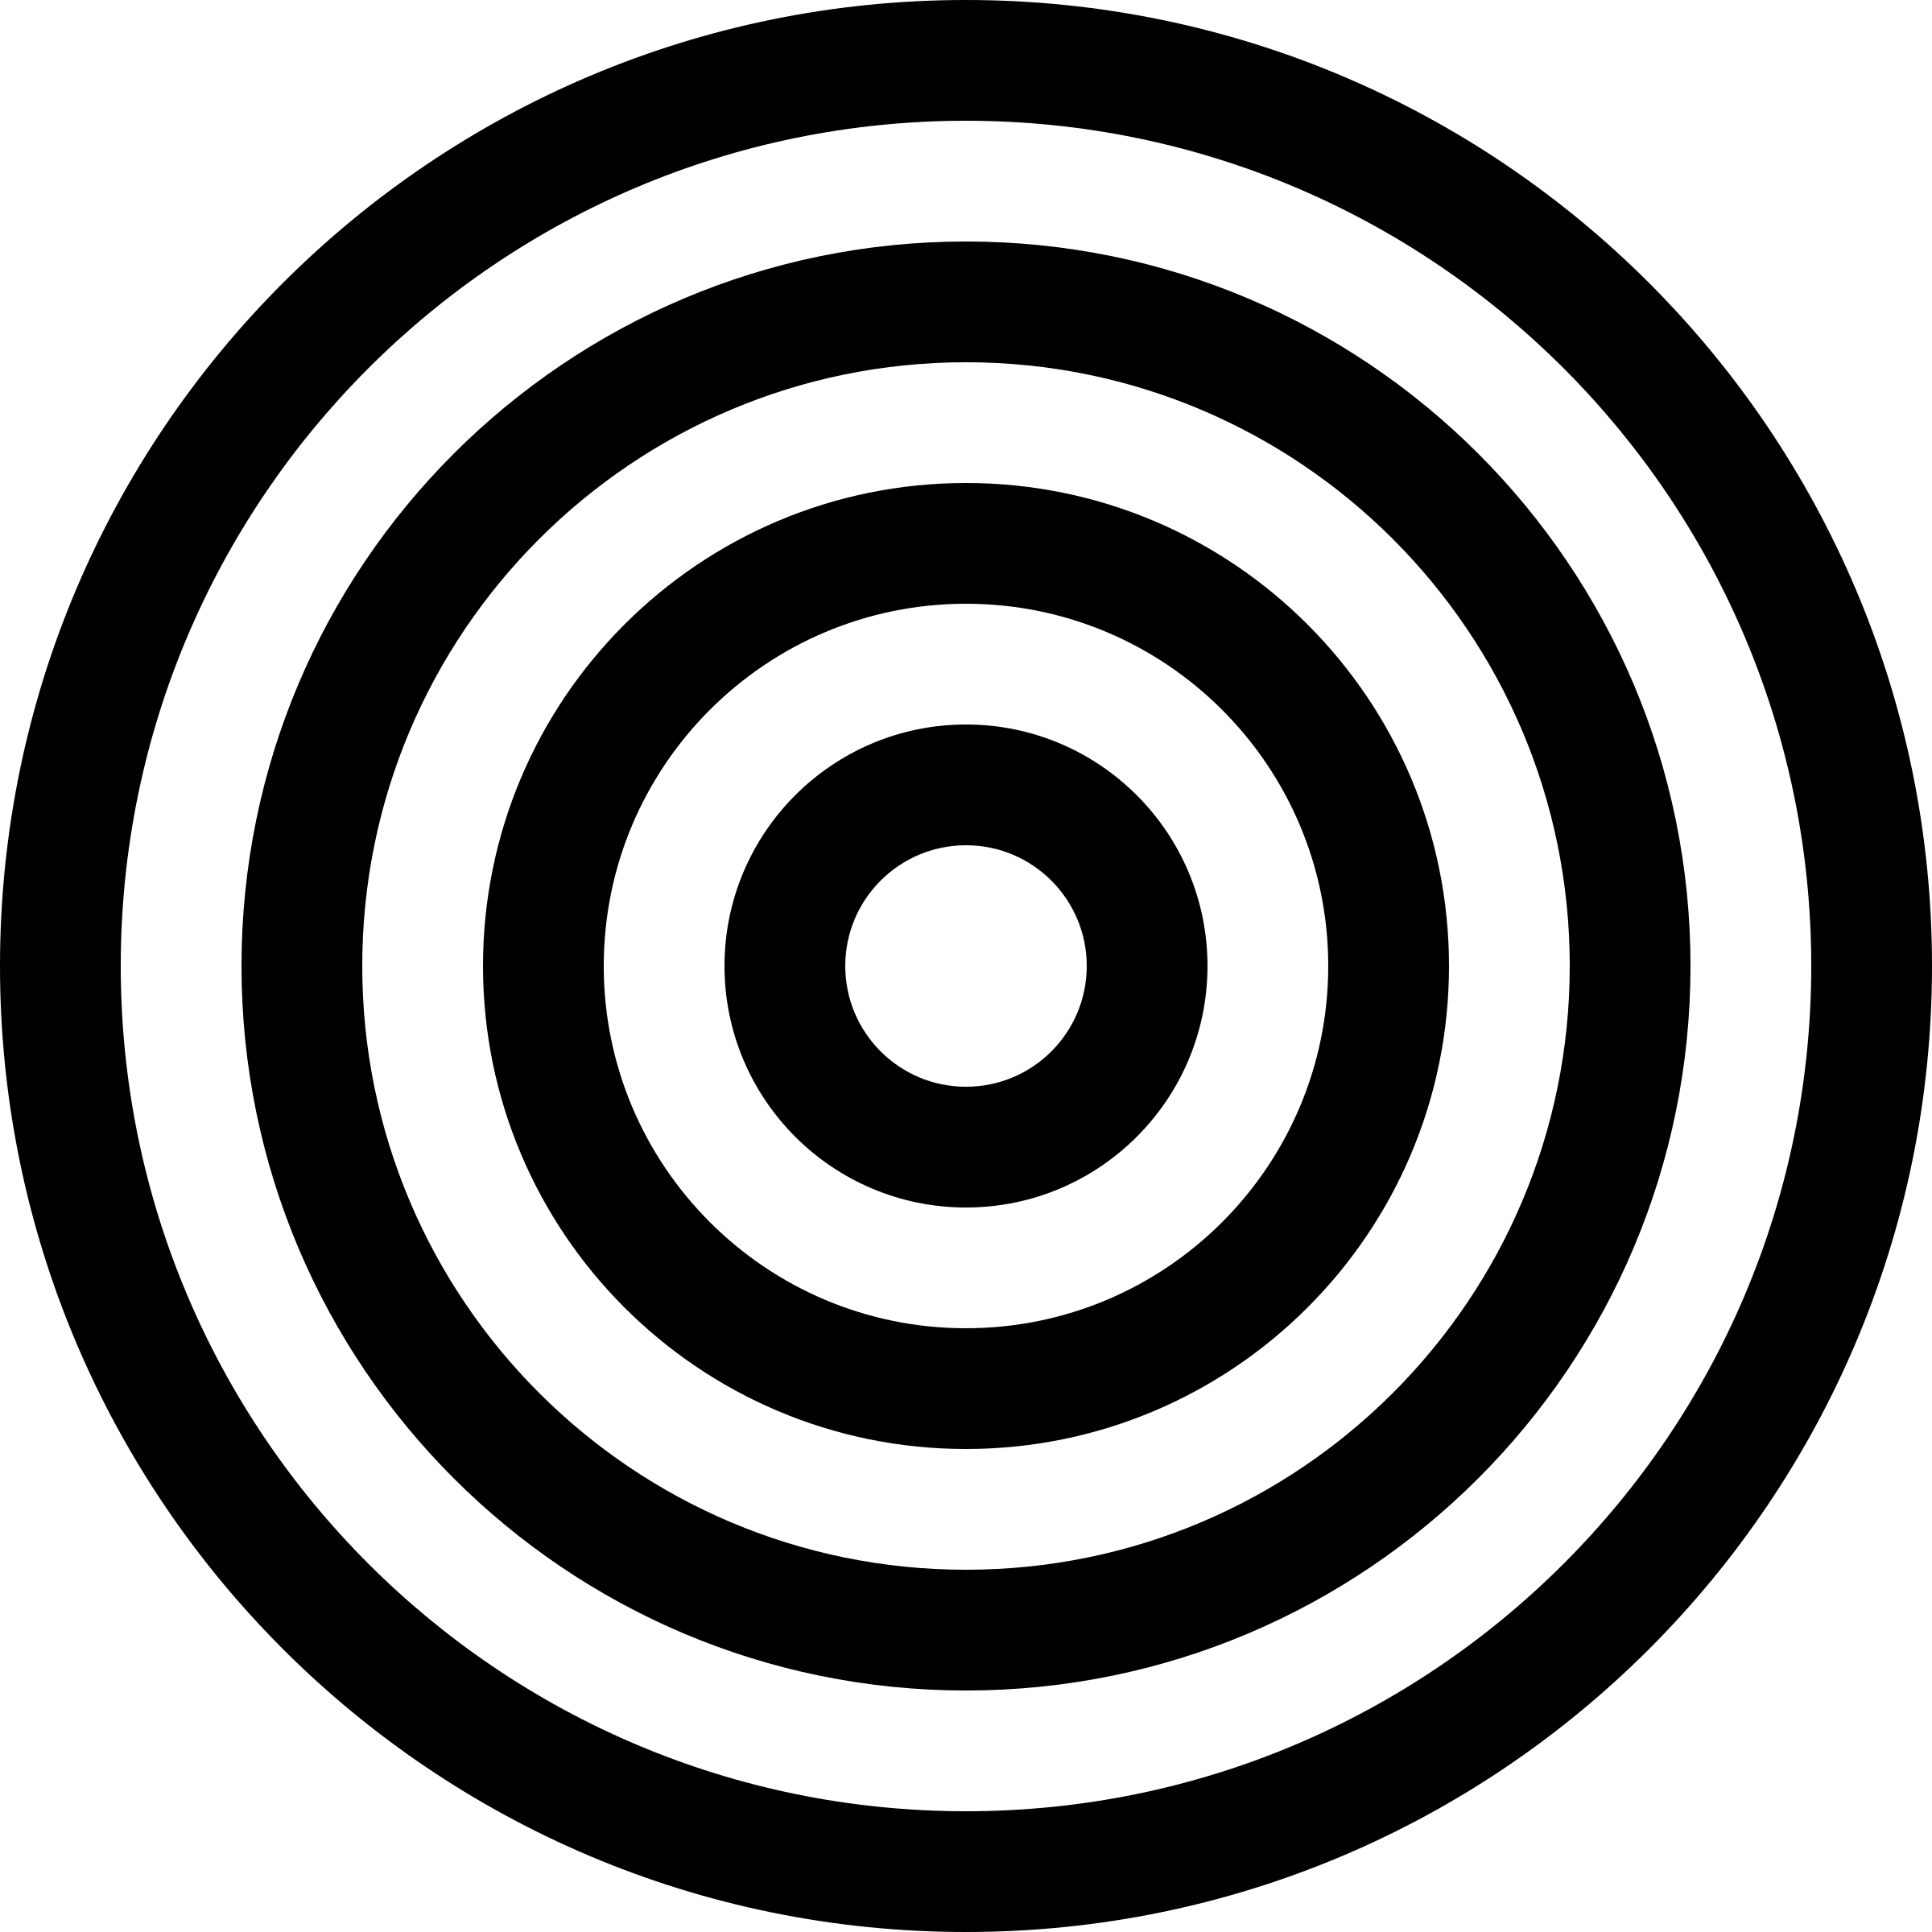 vector target black and white